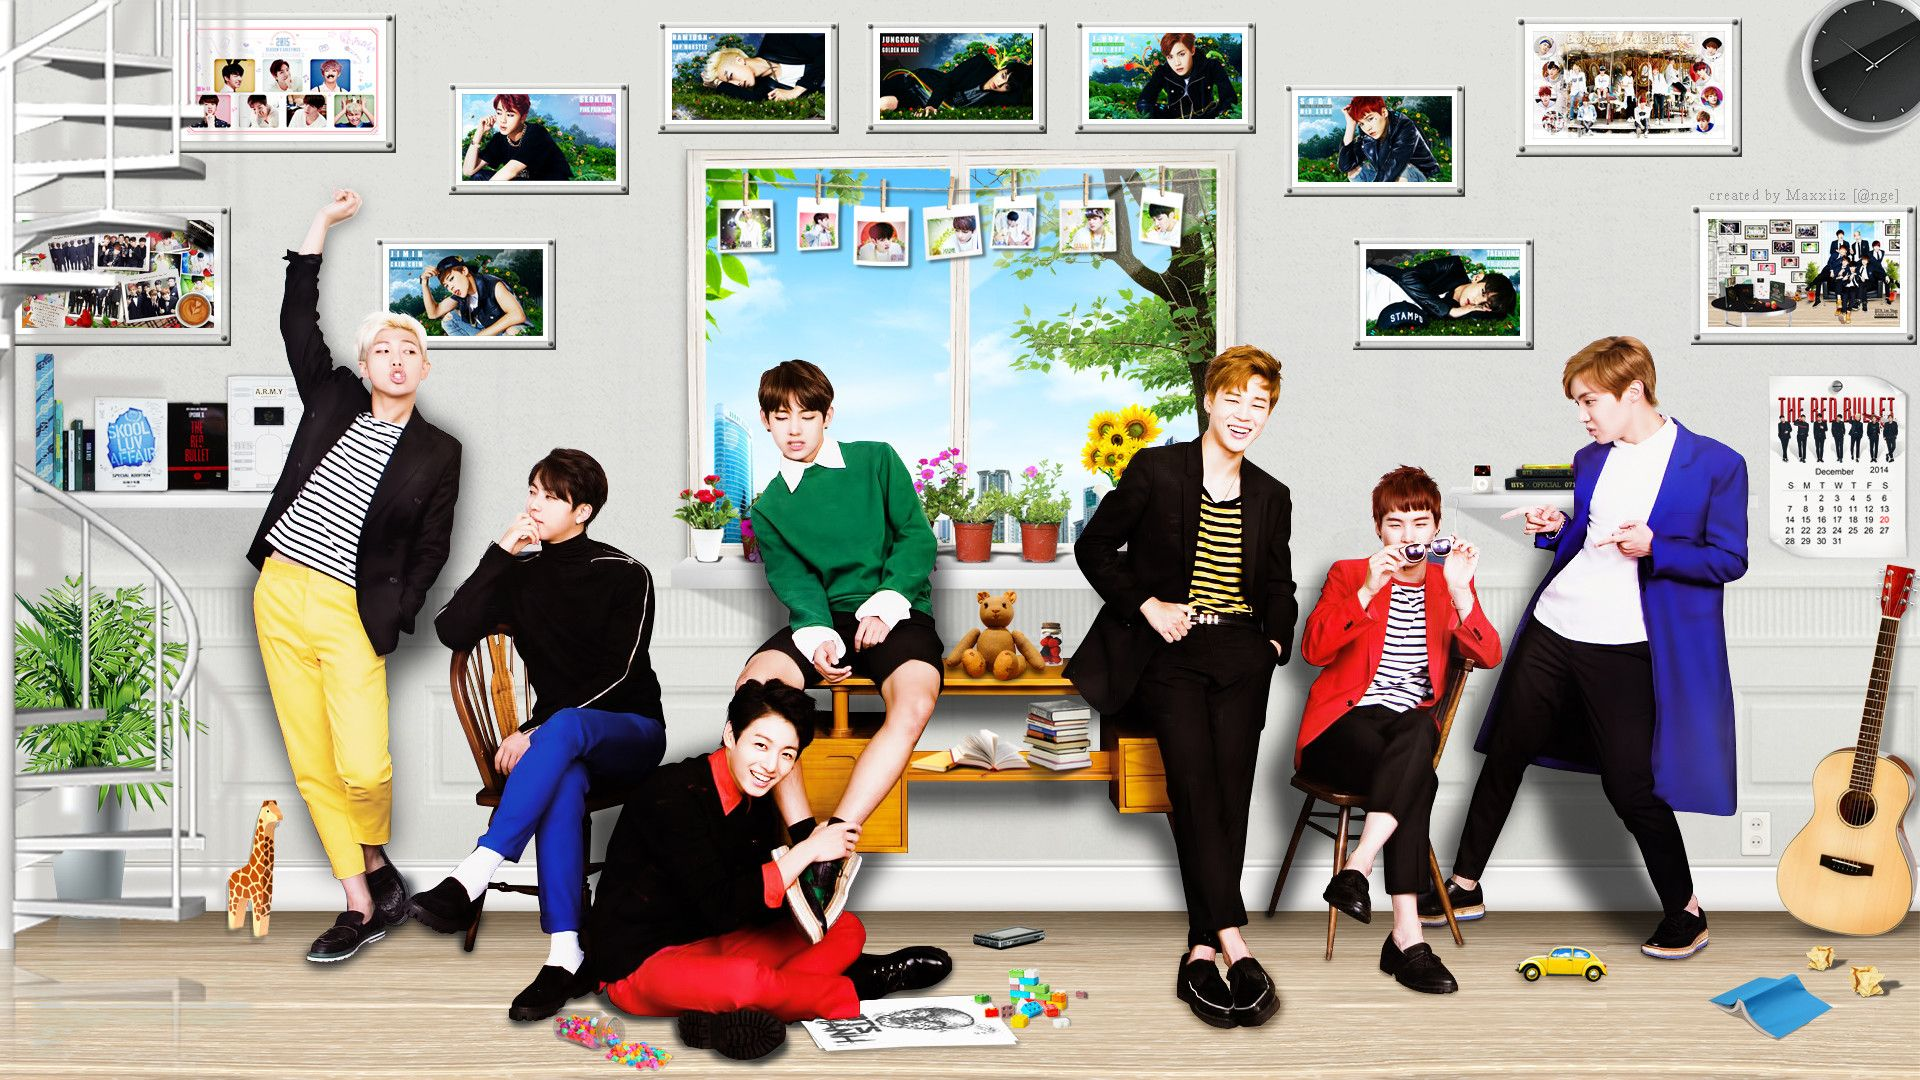 Bts Wallpaper Hd 1920x1080 For Tablet Aph